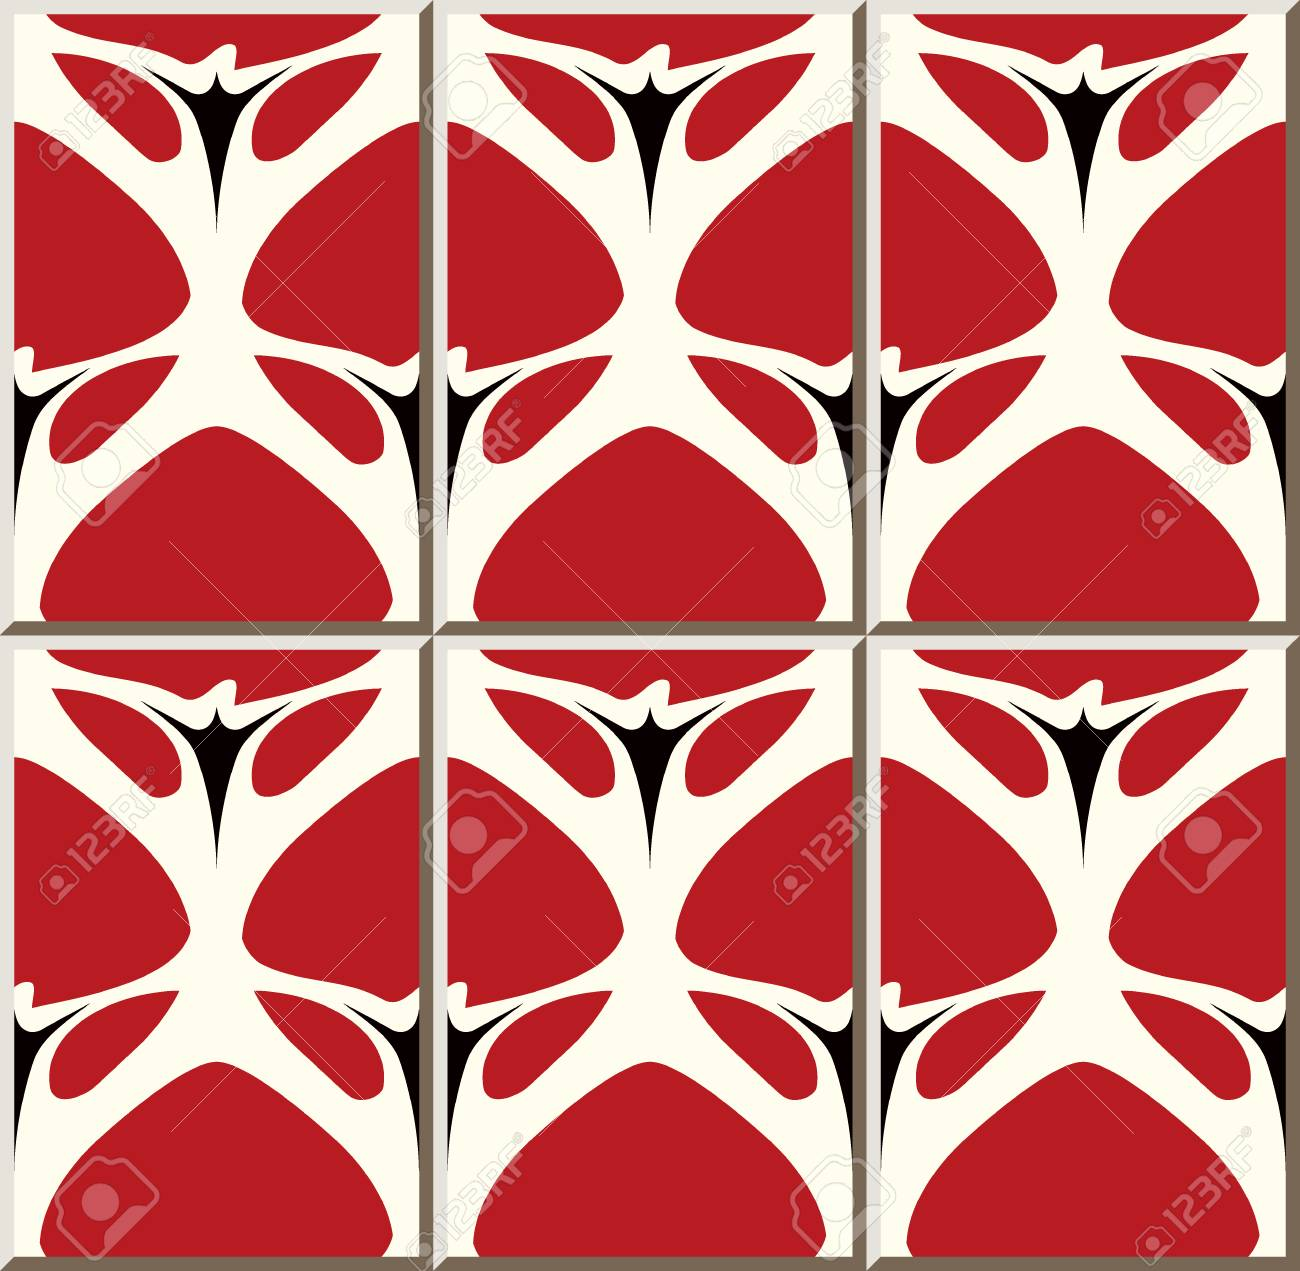 Ceramic Tile Pattern Curve Cross Garden Red Flower Oriental Royalty Free Cliparts Vectors And Stock Illustration Image 102102163